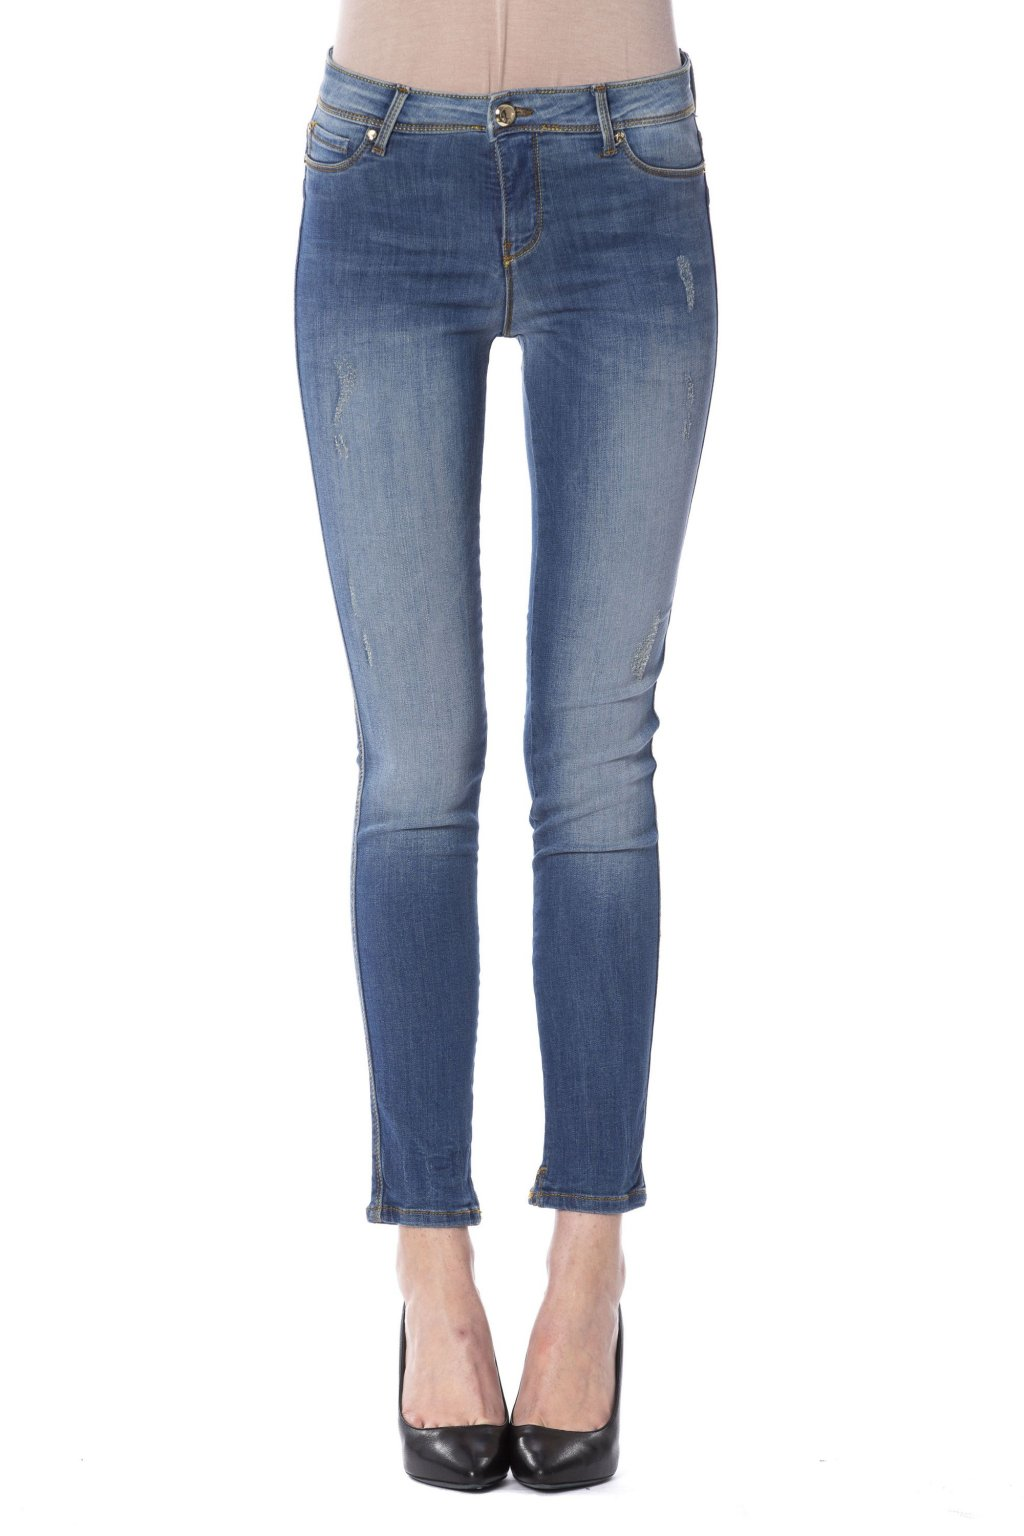 damske jeggings rifle Gaudi Jeans (2)